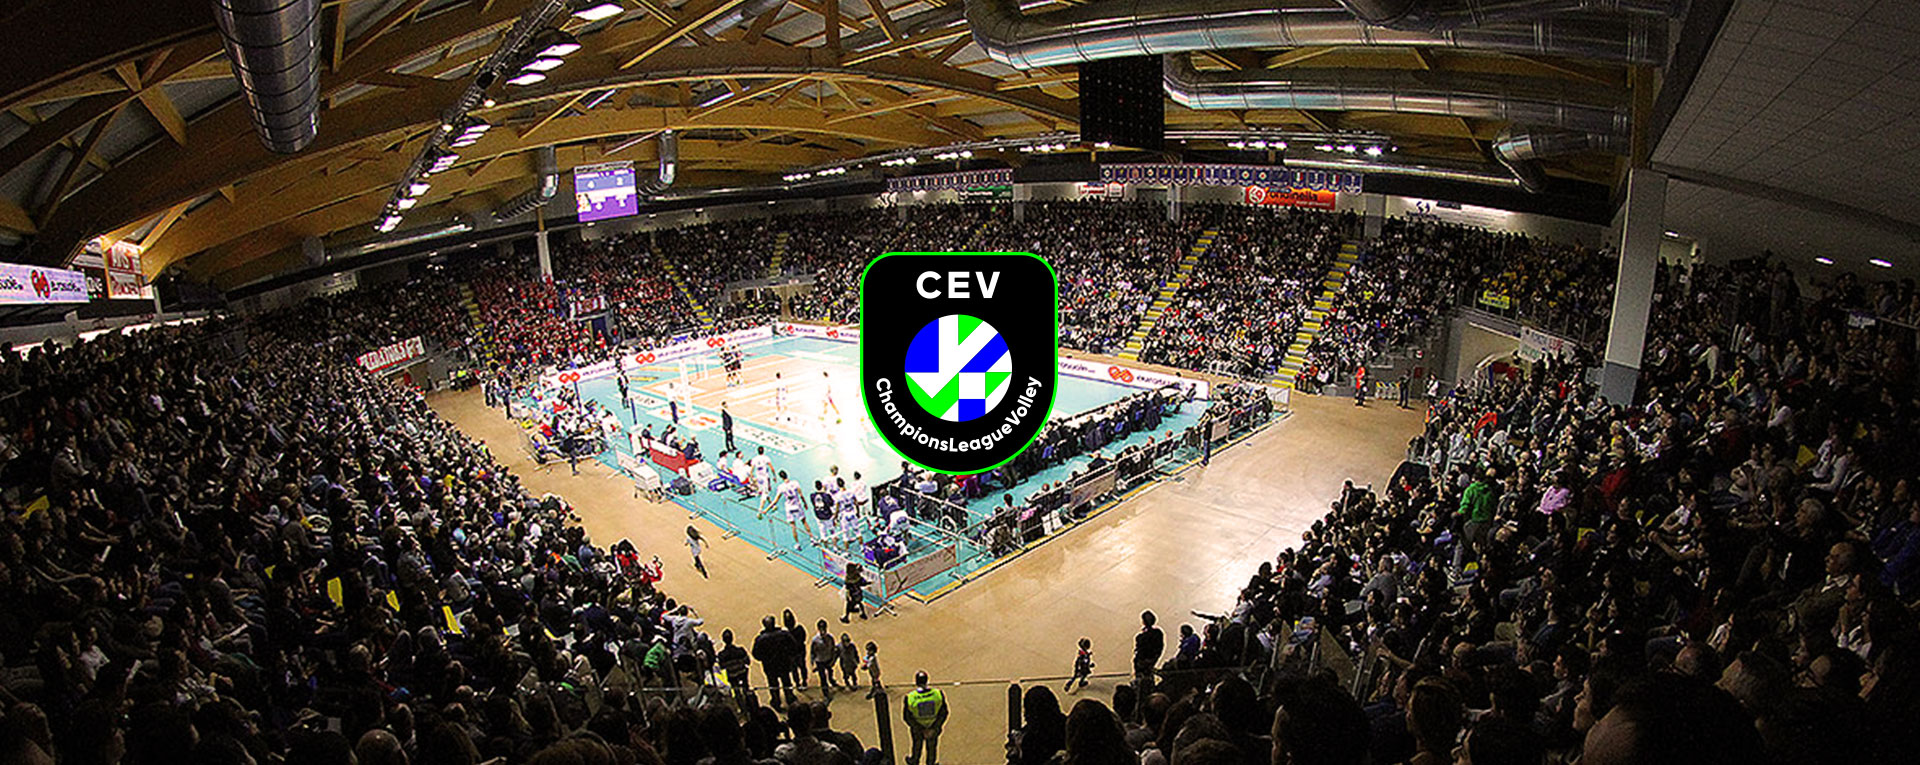 Mondiali Pallavolo Maschile 2020 Calendario.Cev Champions League Lube Volley Official Web Site